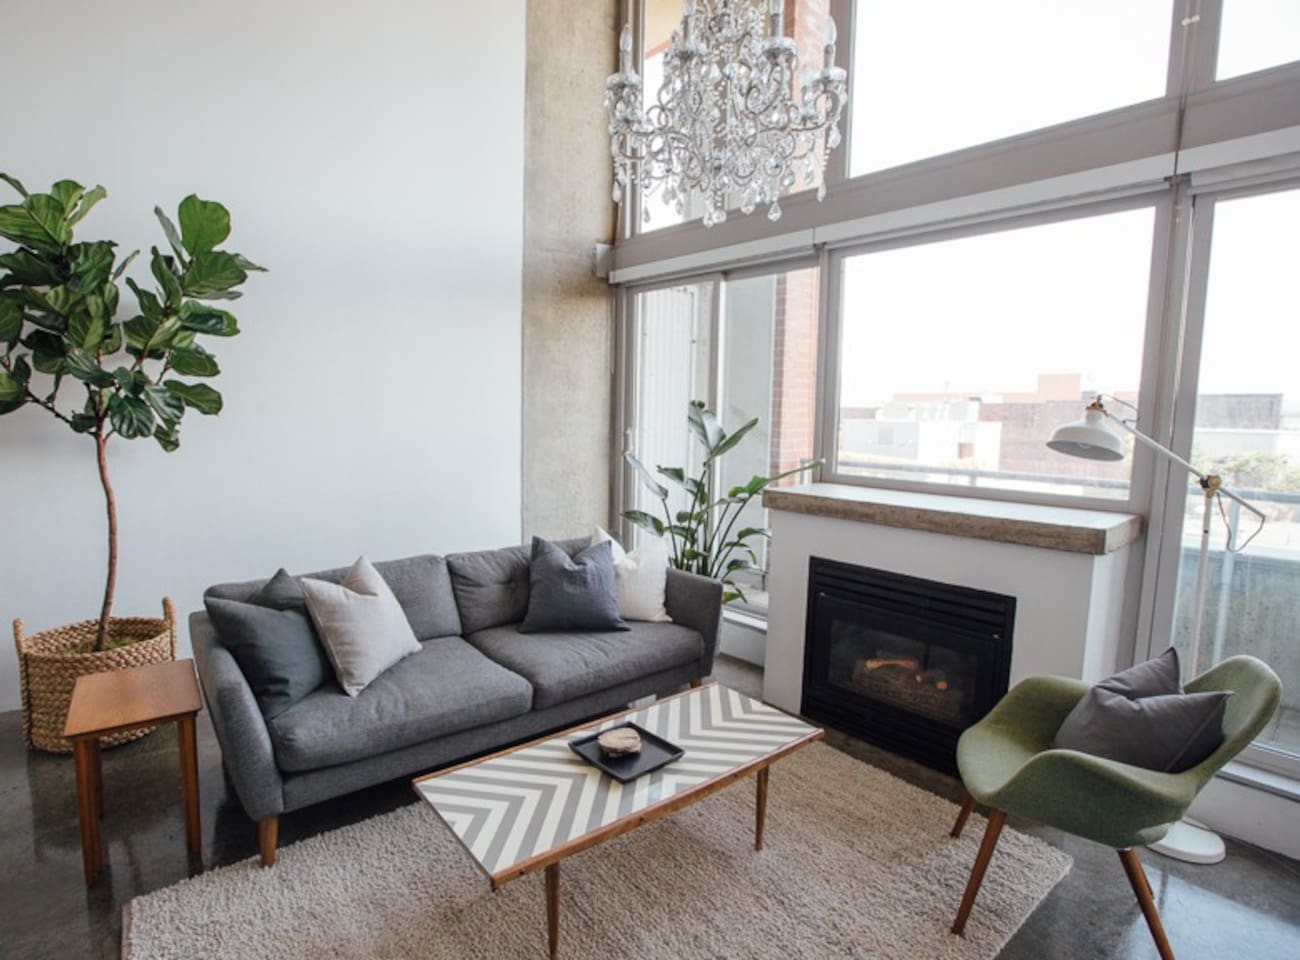 Modern style. Locally sourced furniture.   A gas fireplace provides all the heat you'll need in the cooler months.